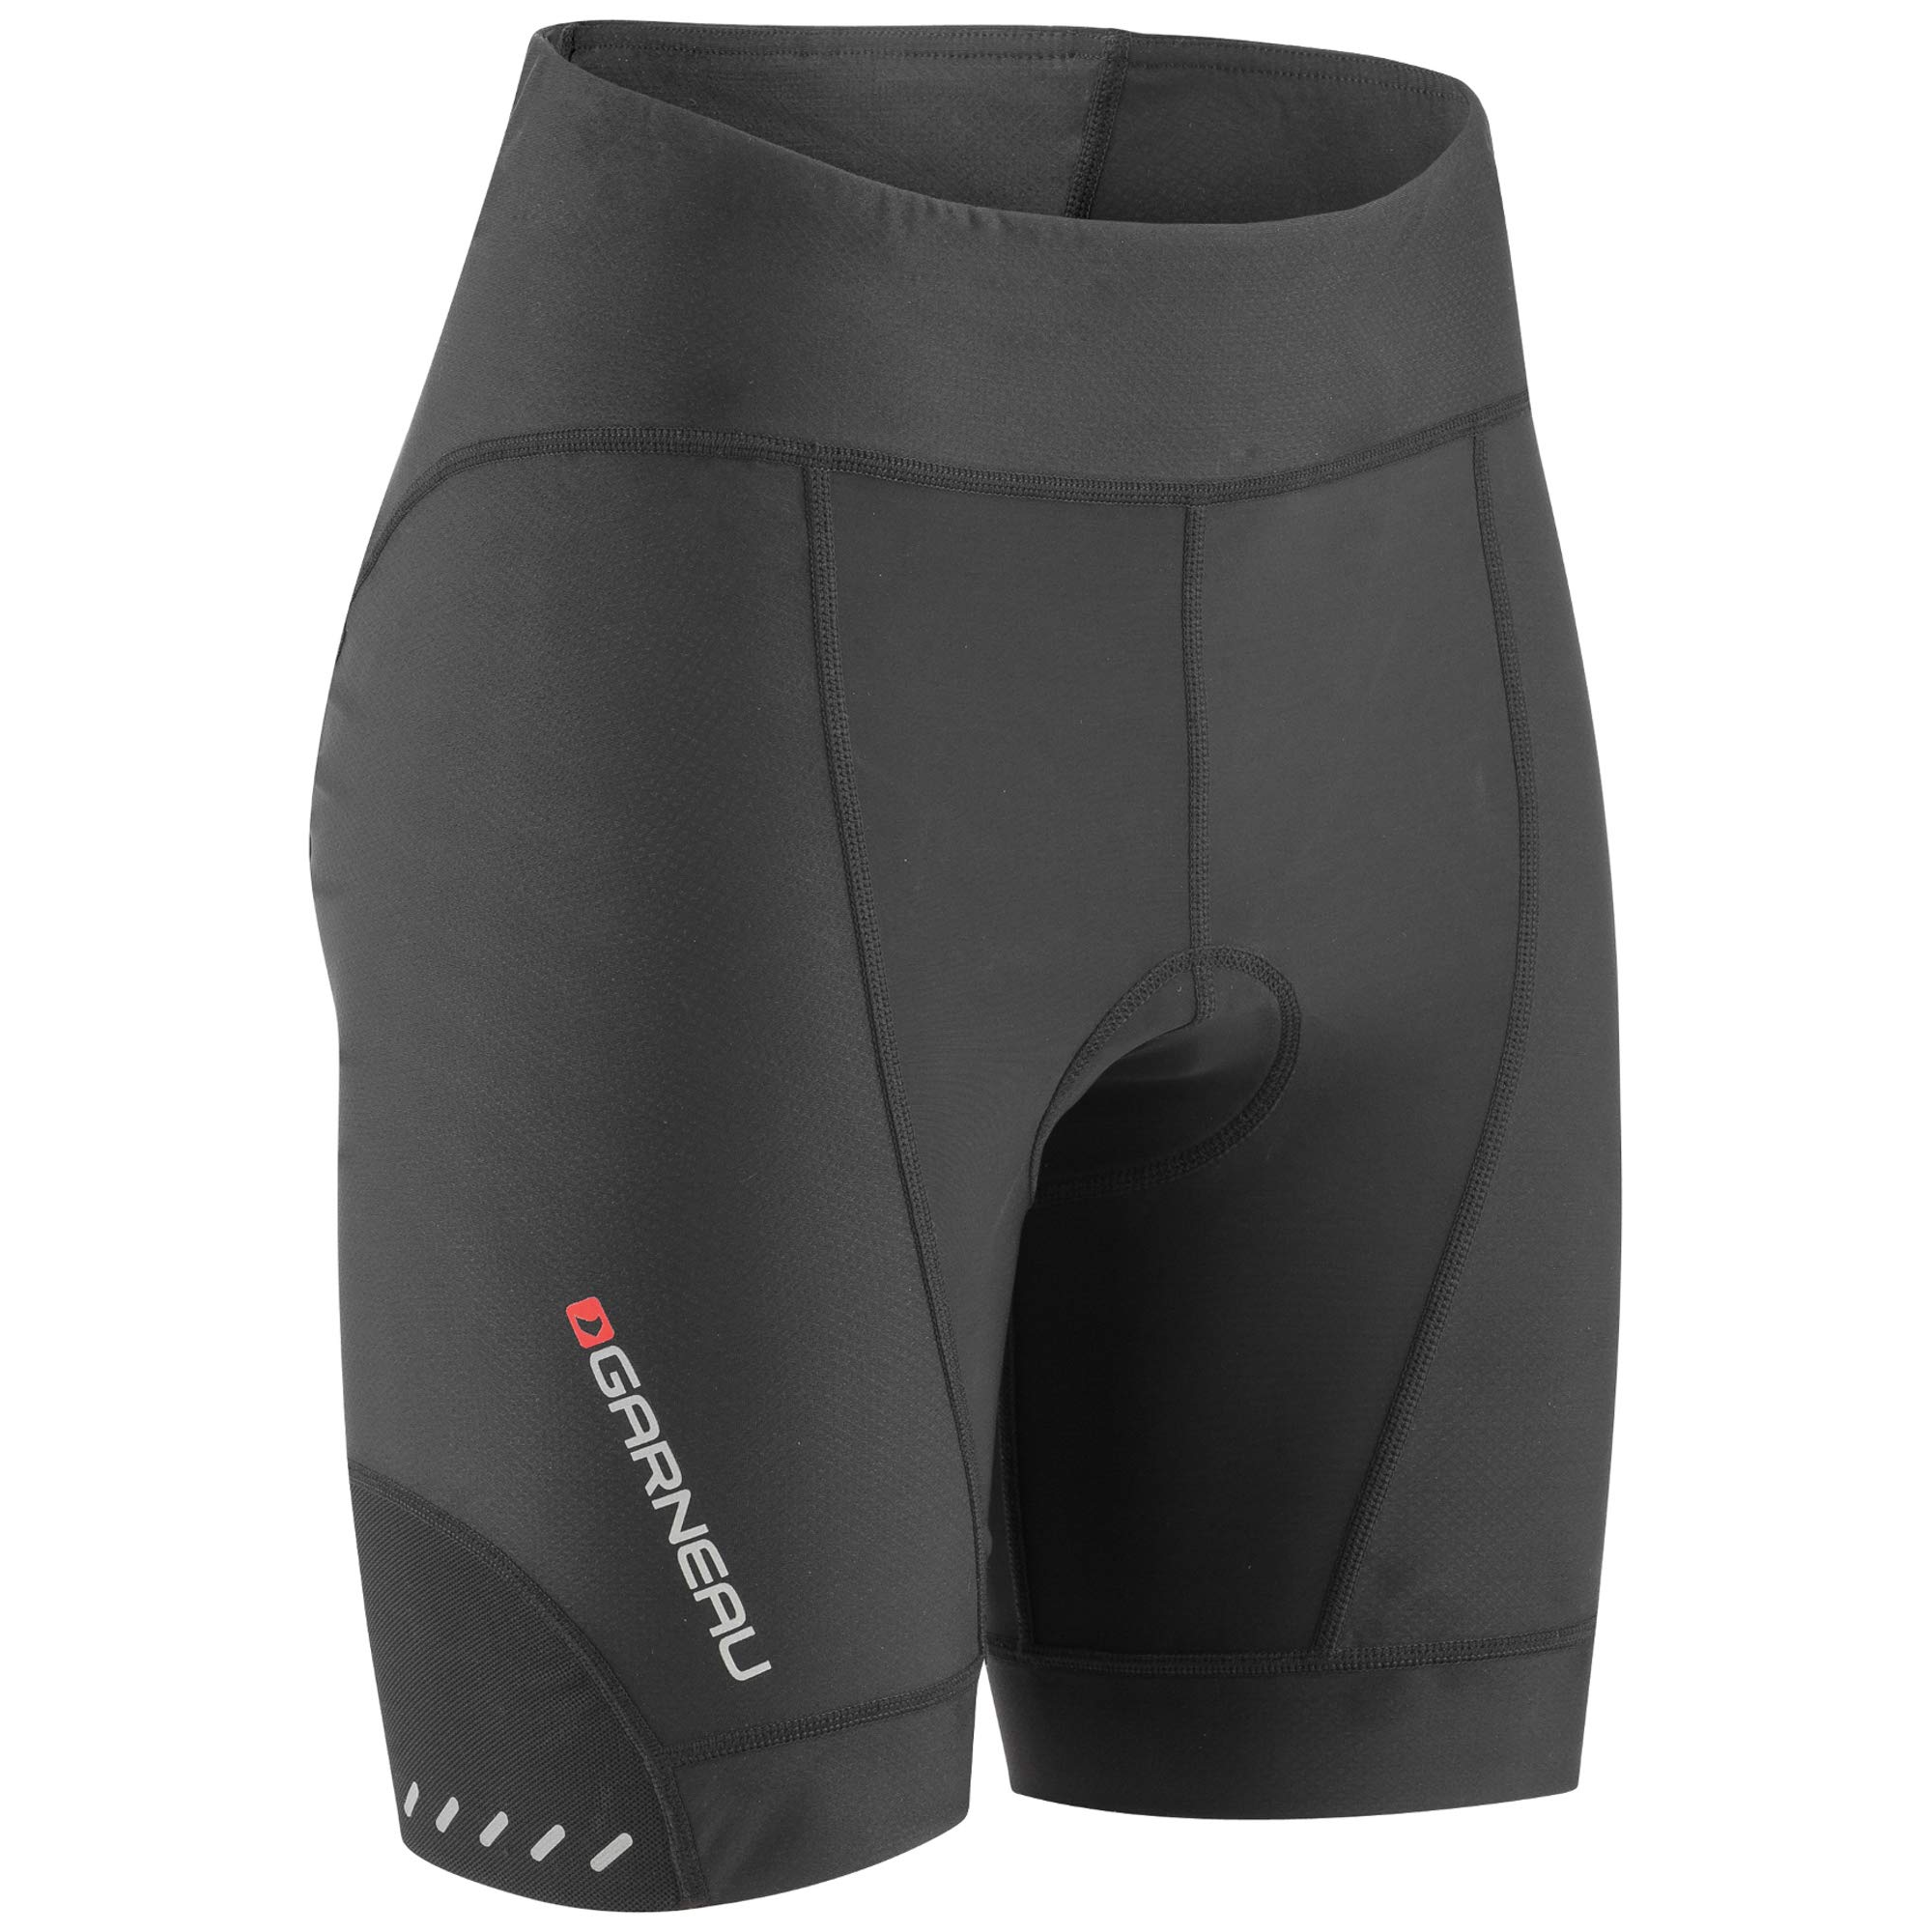 Louis Garneau Women's Optimum 7 Bike Shorts, Padded and Breathable for All-Weather Riding, Black, XX-Large by Louis Garneau